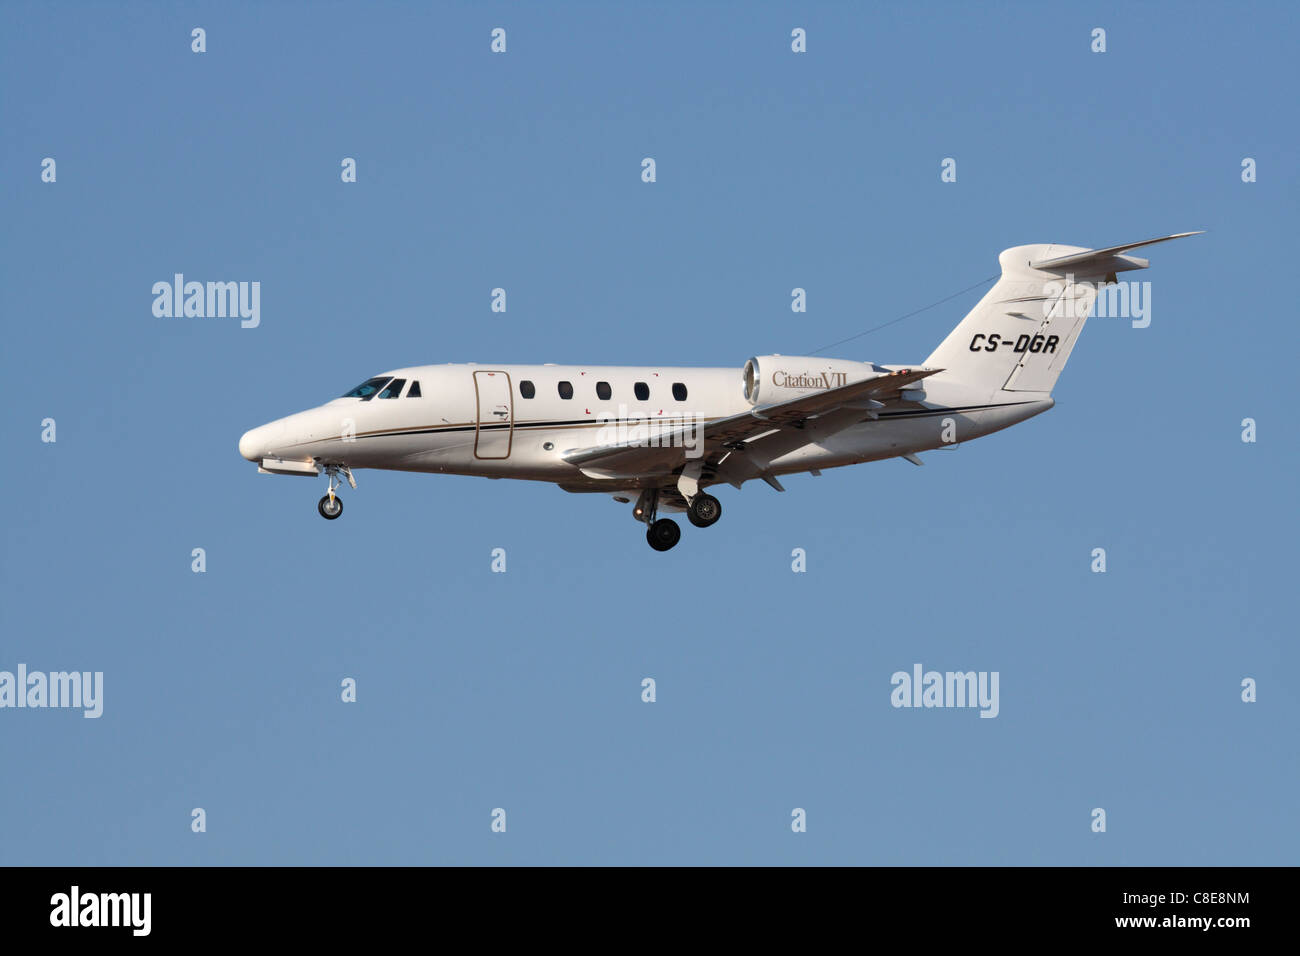 VIP transportation by air. Cessna Citation VII business jet operated by Airjetsul - Stock Image